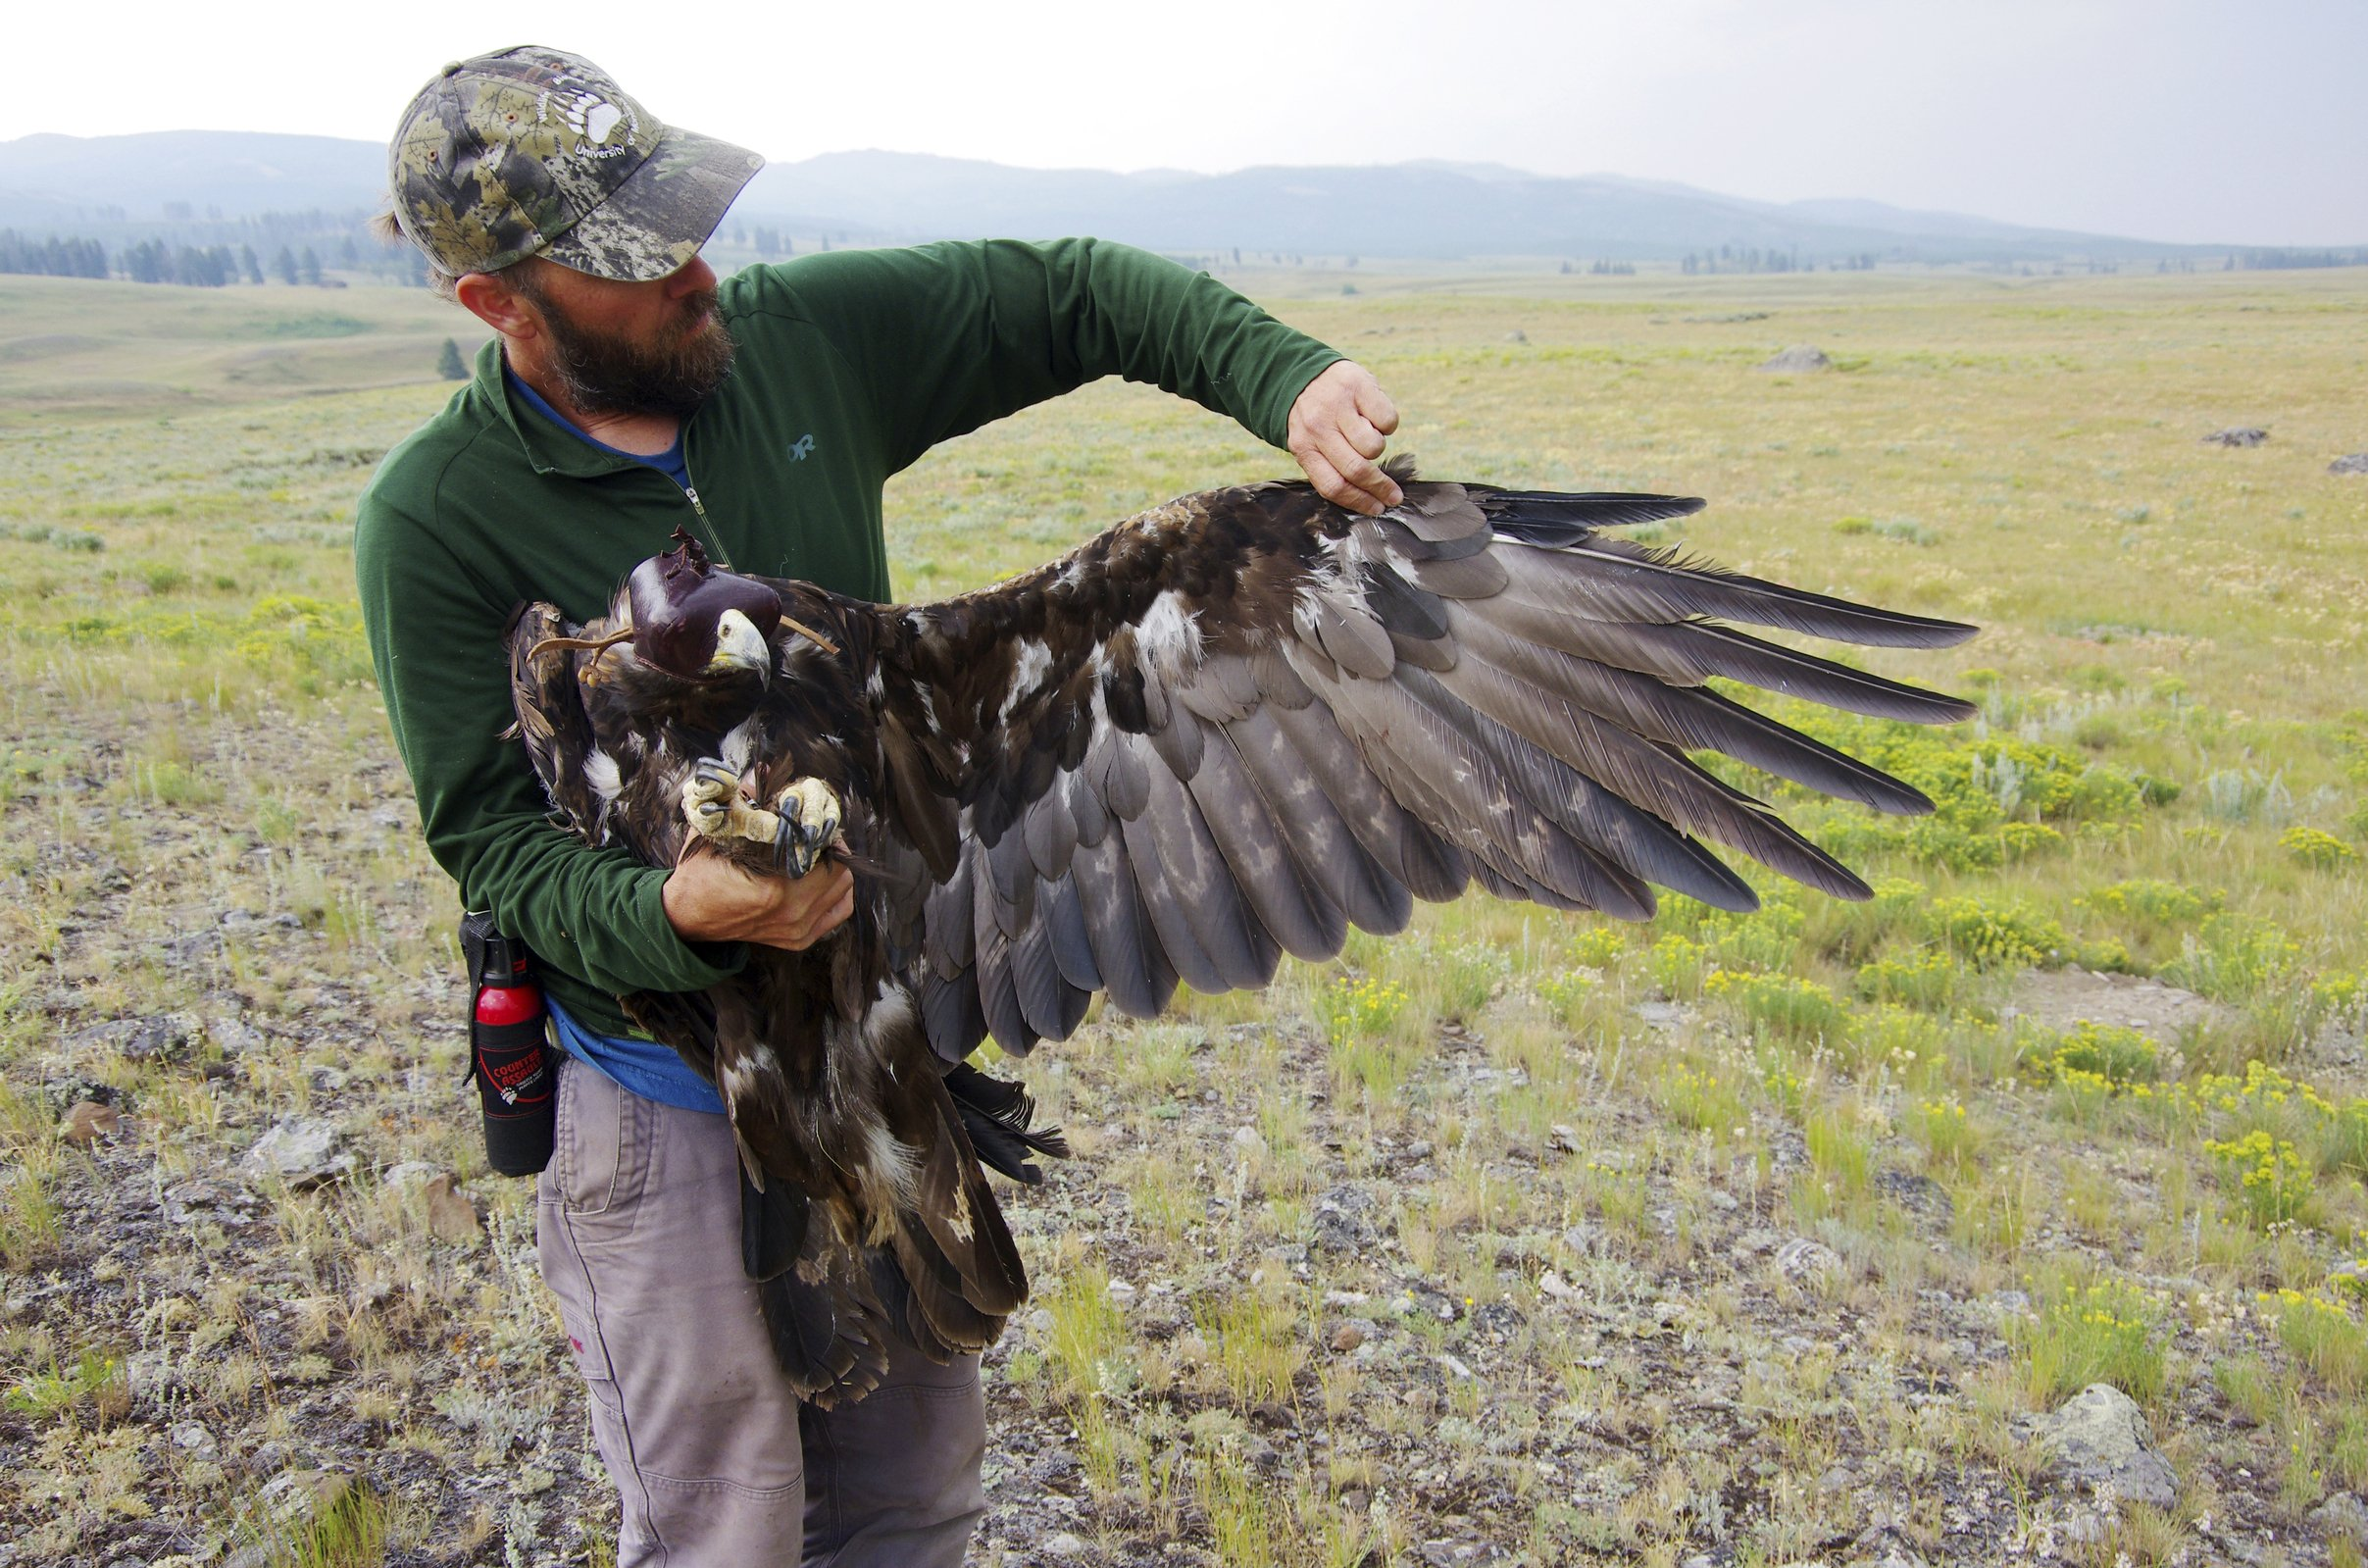 Lead Kills 1st Yellowstone Golden Eagle Fitted With Tracker